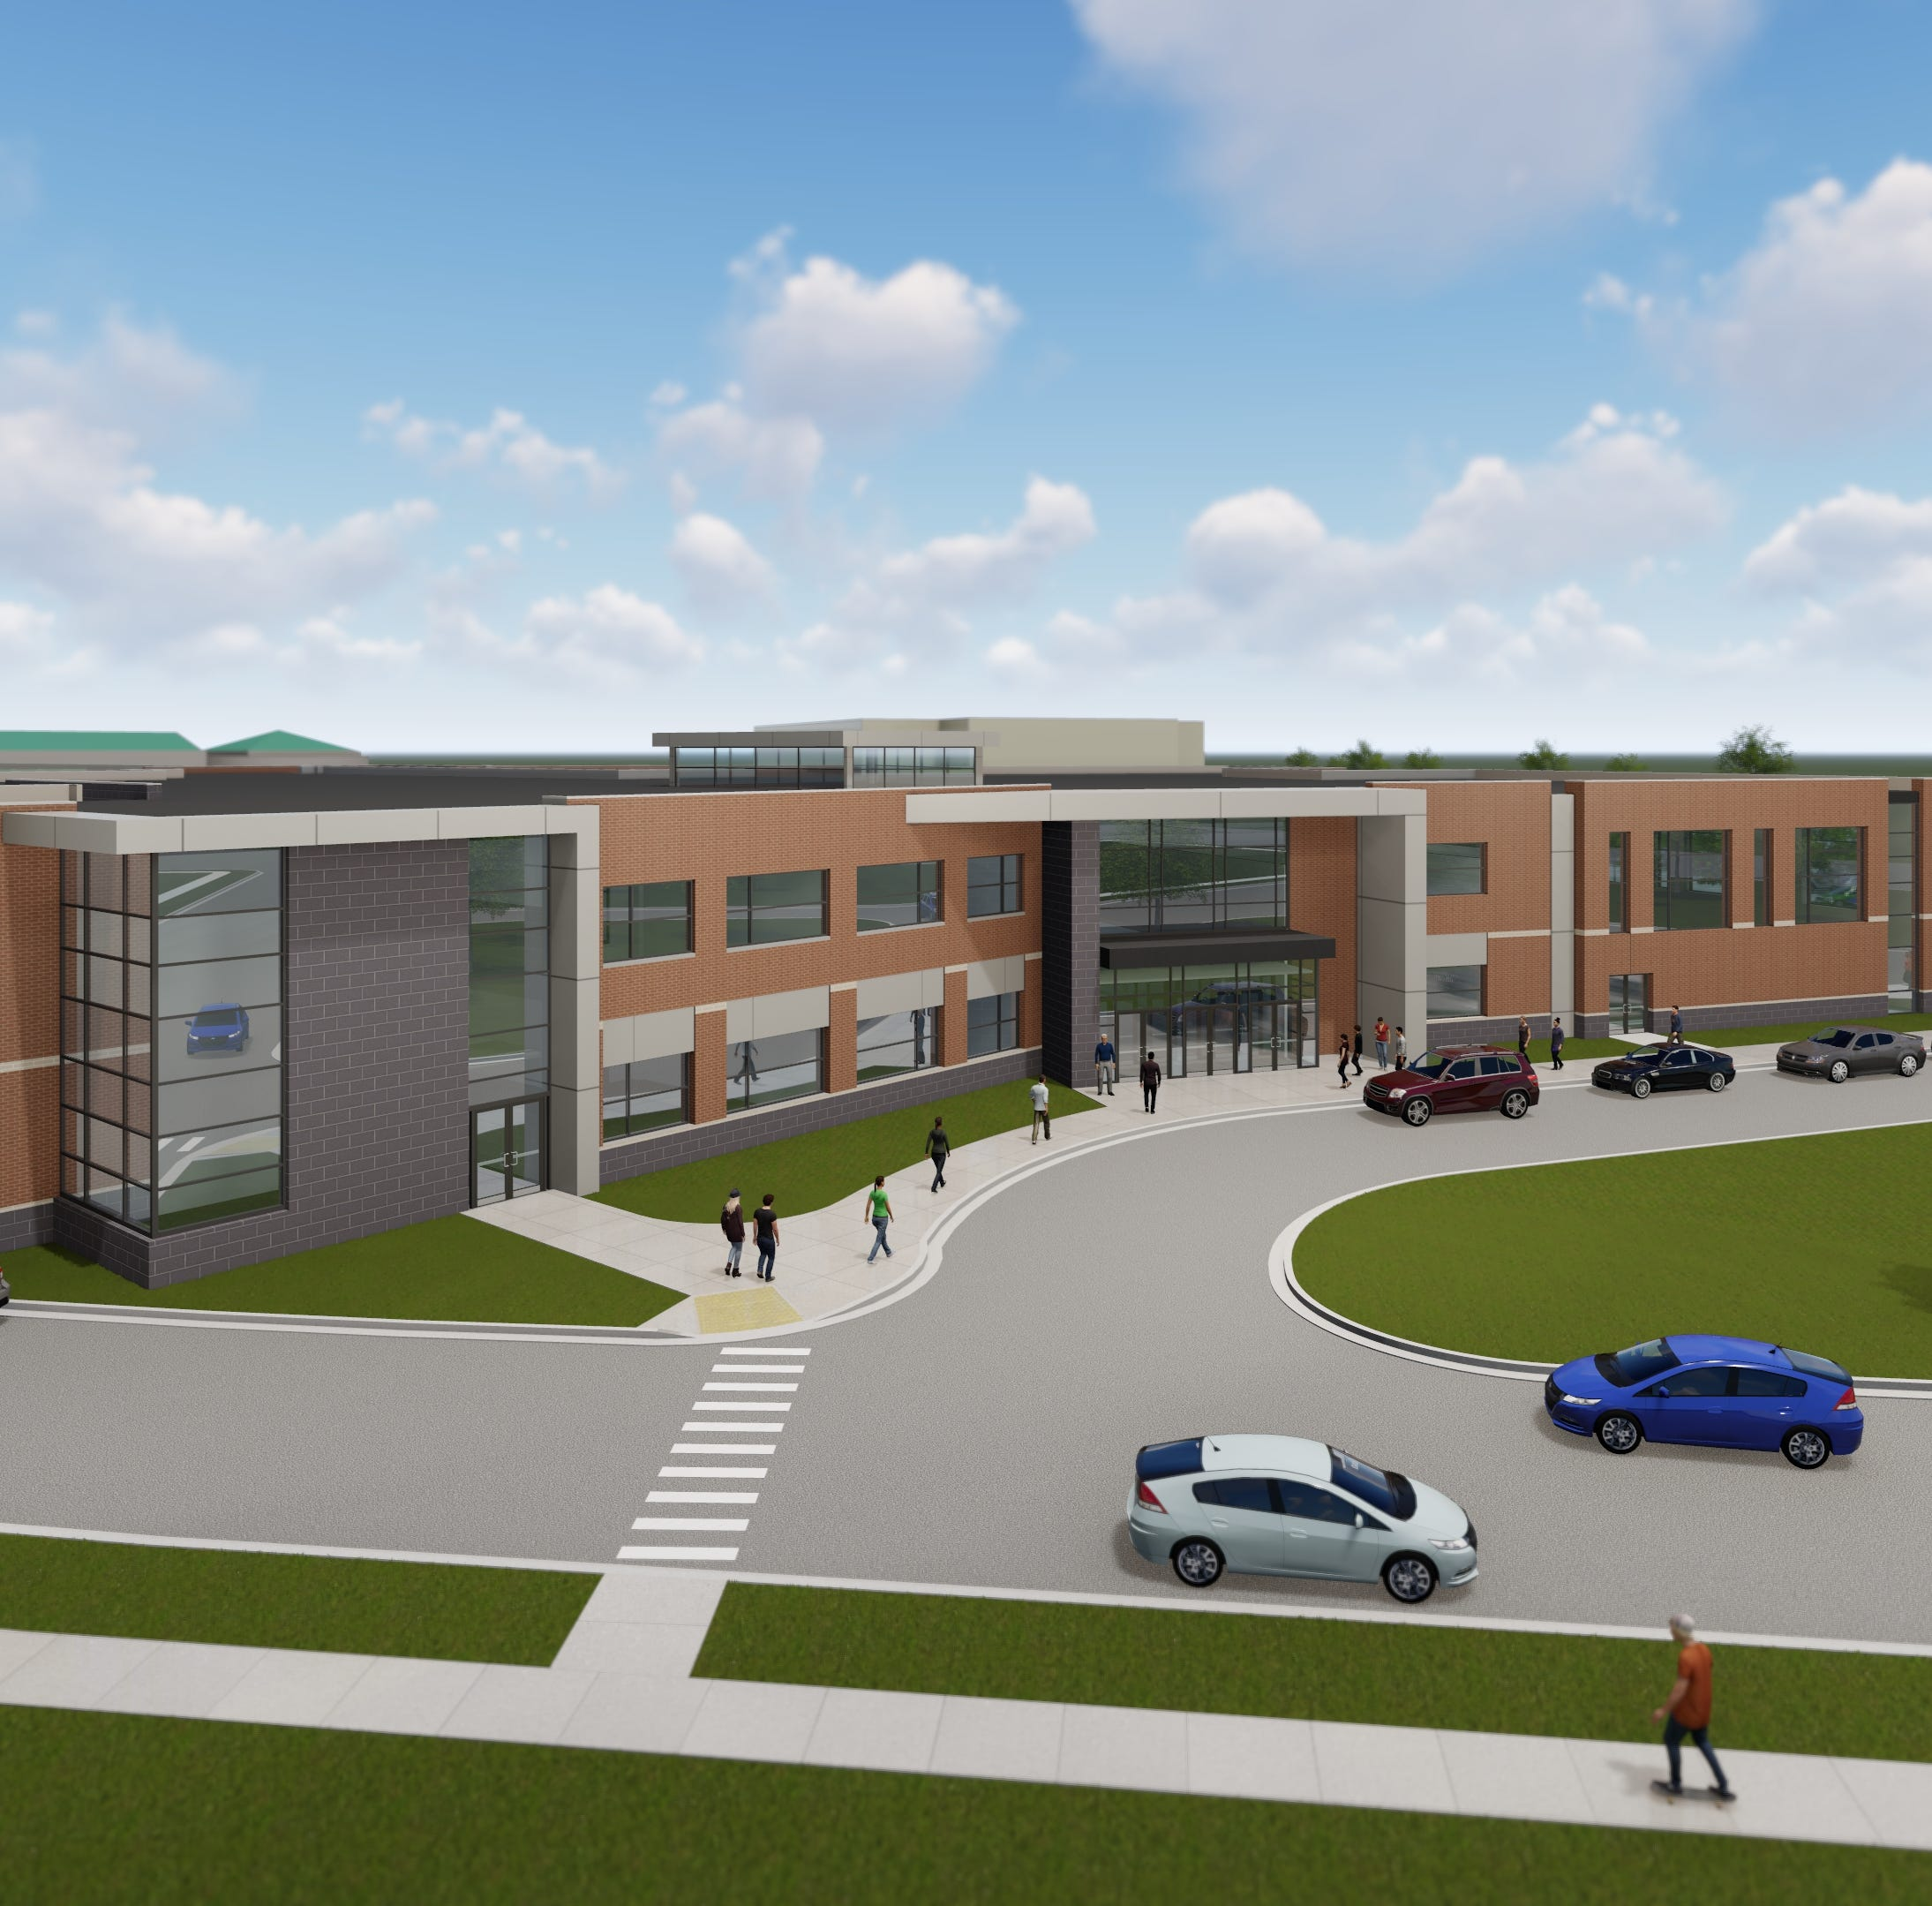 3 ways Westfield High School might feel more like a college after $42M renovation